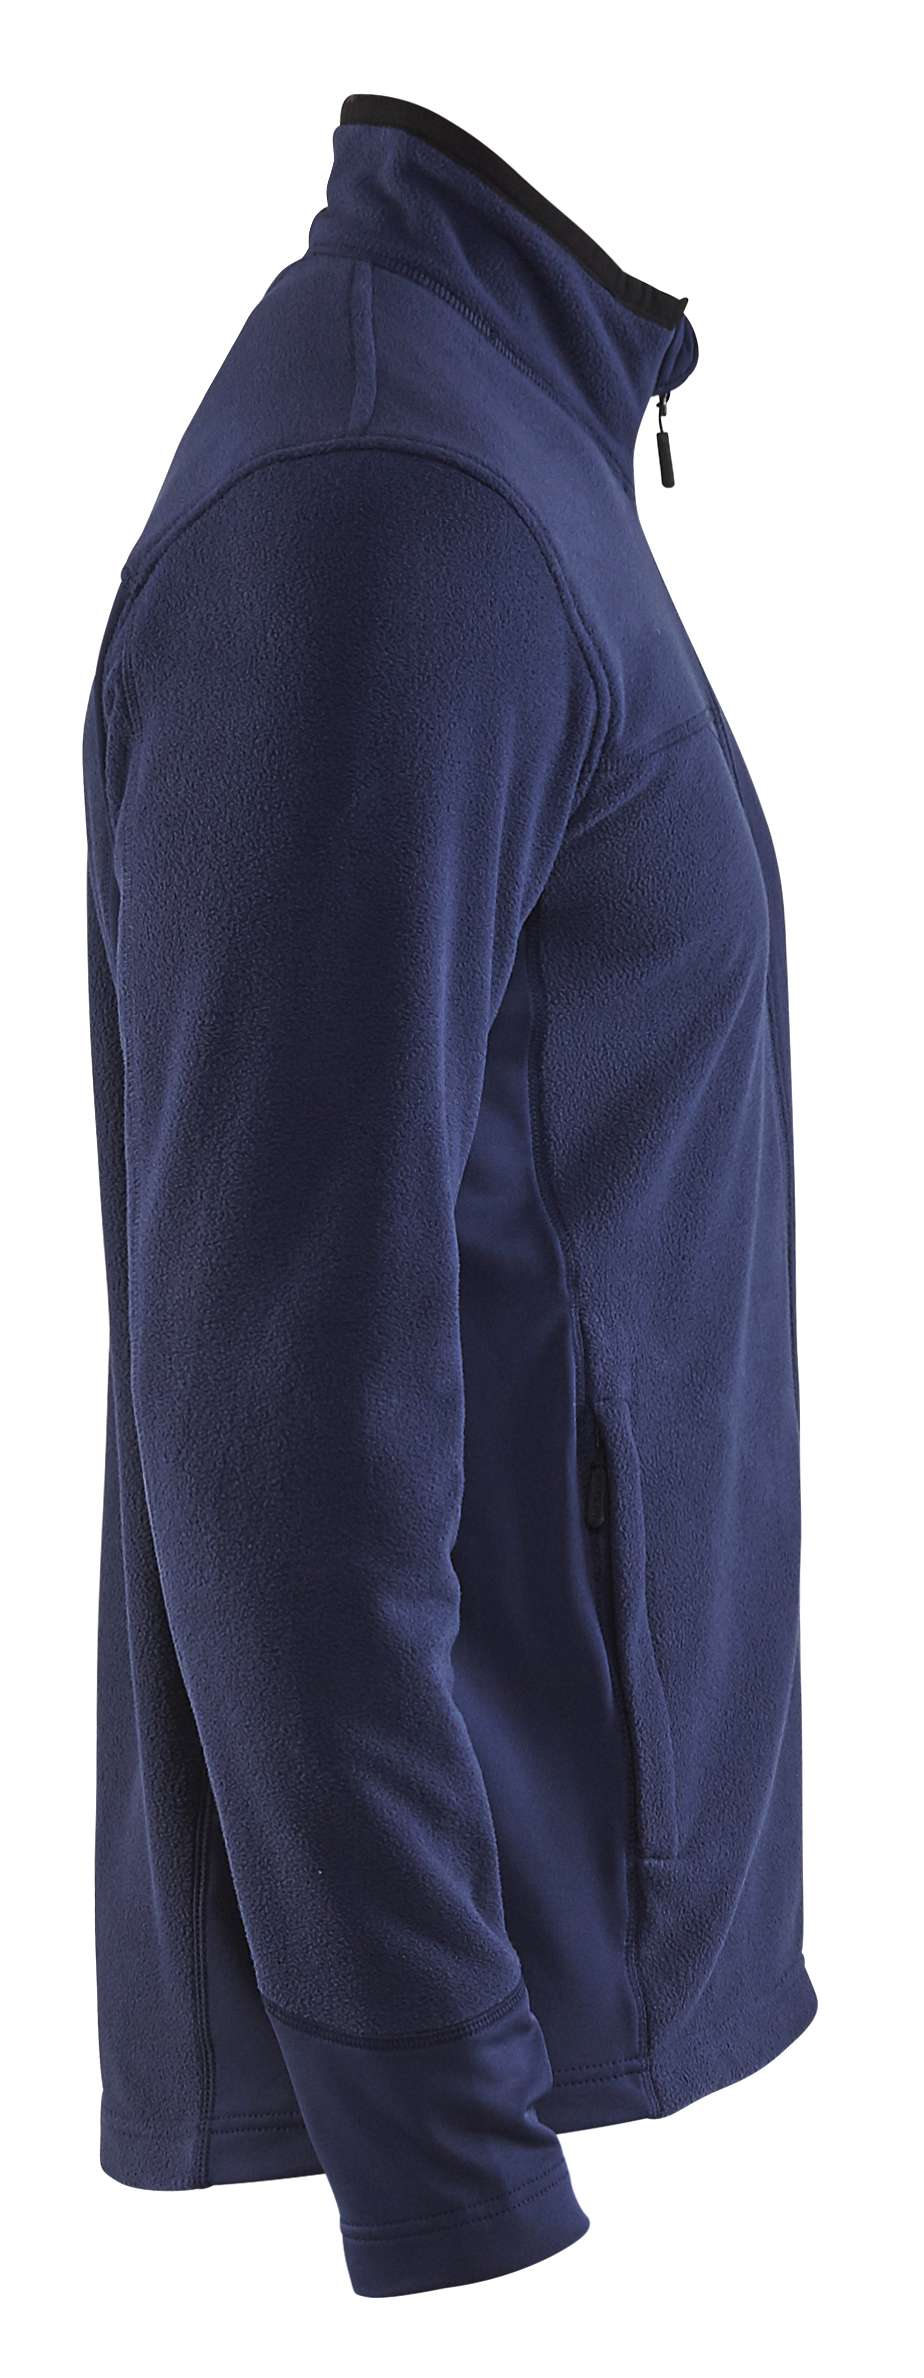 Blaklader Fleece vesten 48951010 marineblauw(8900)